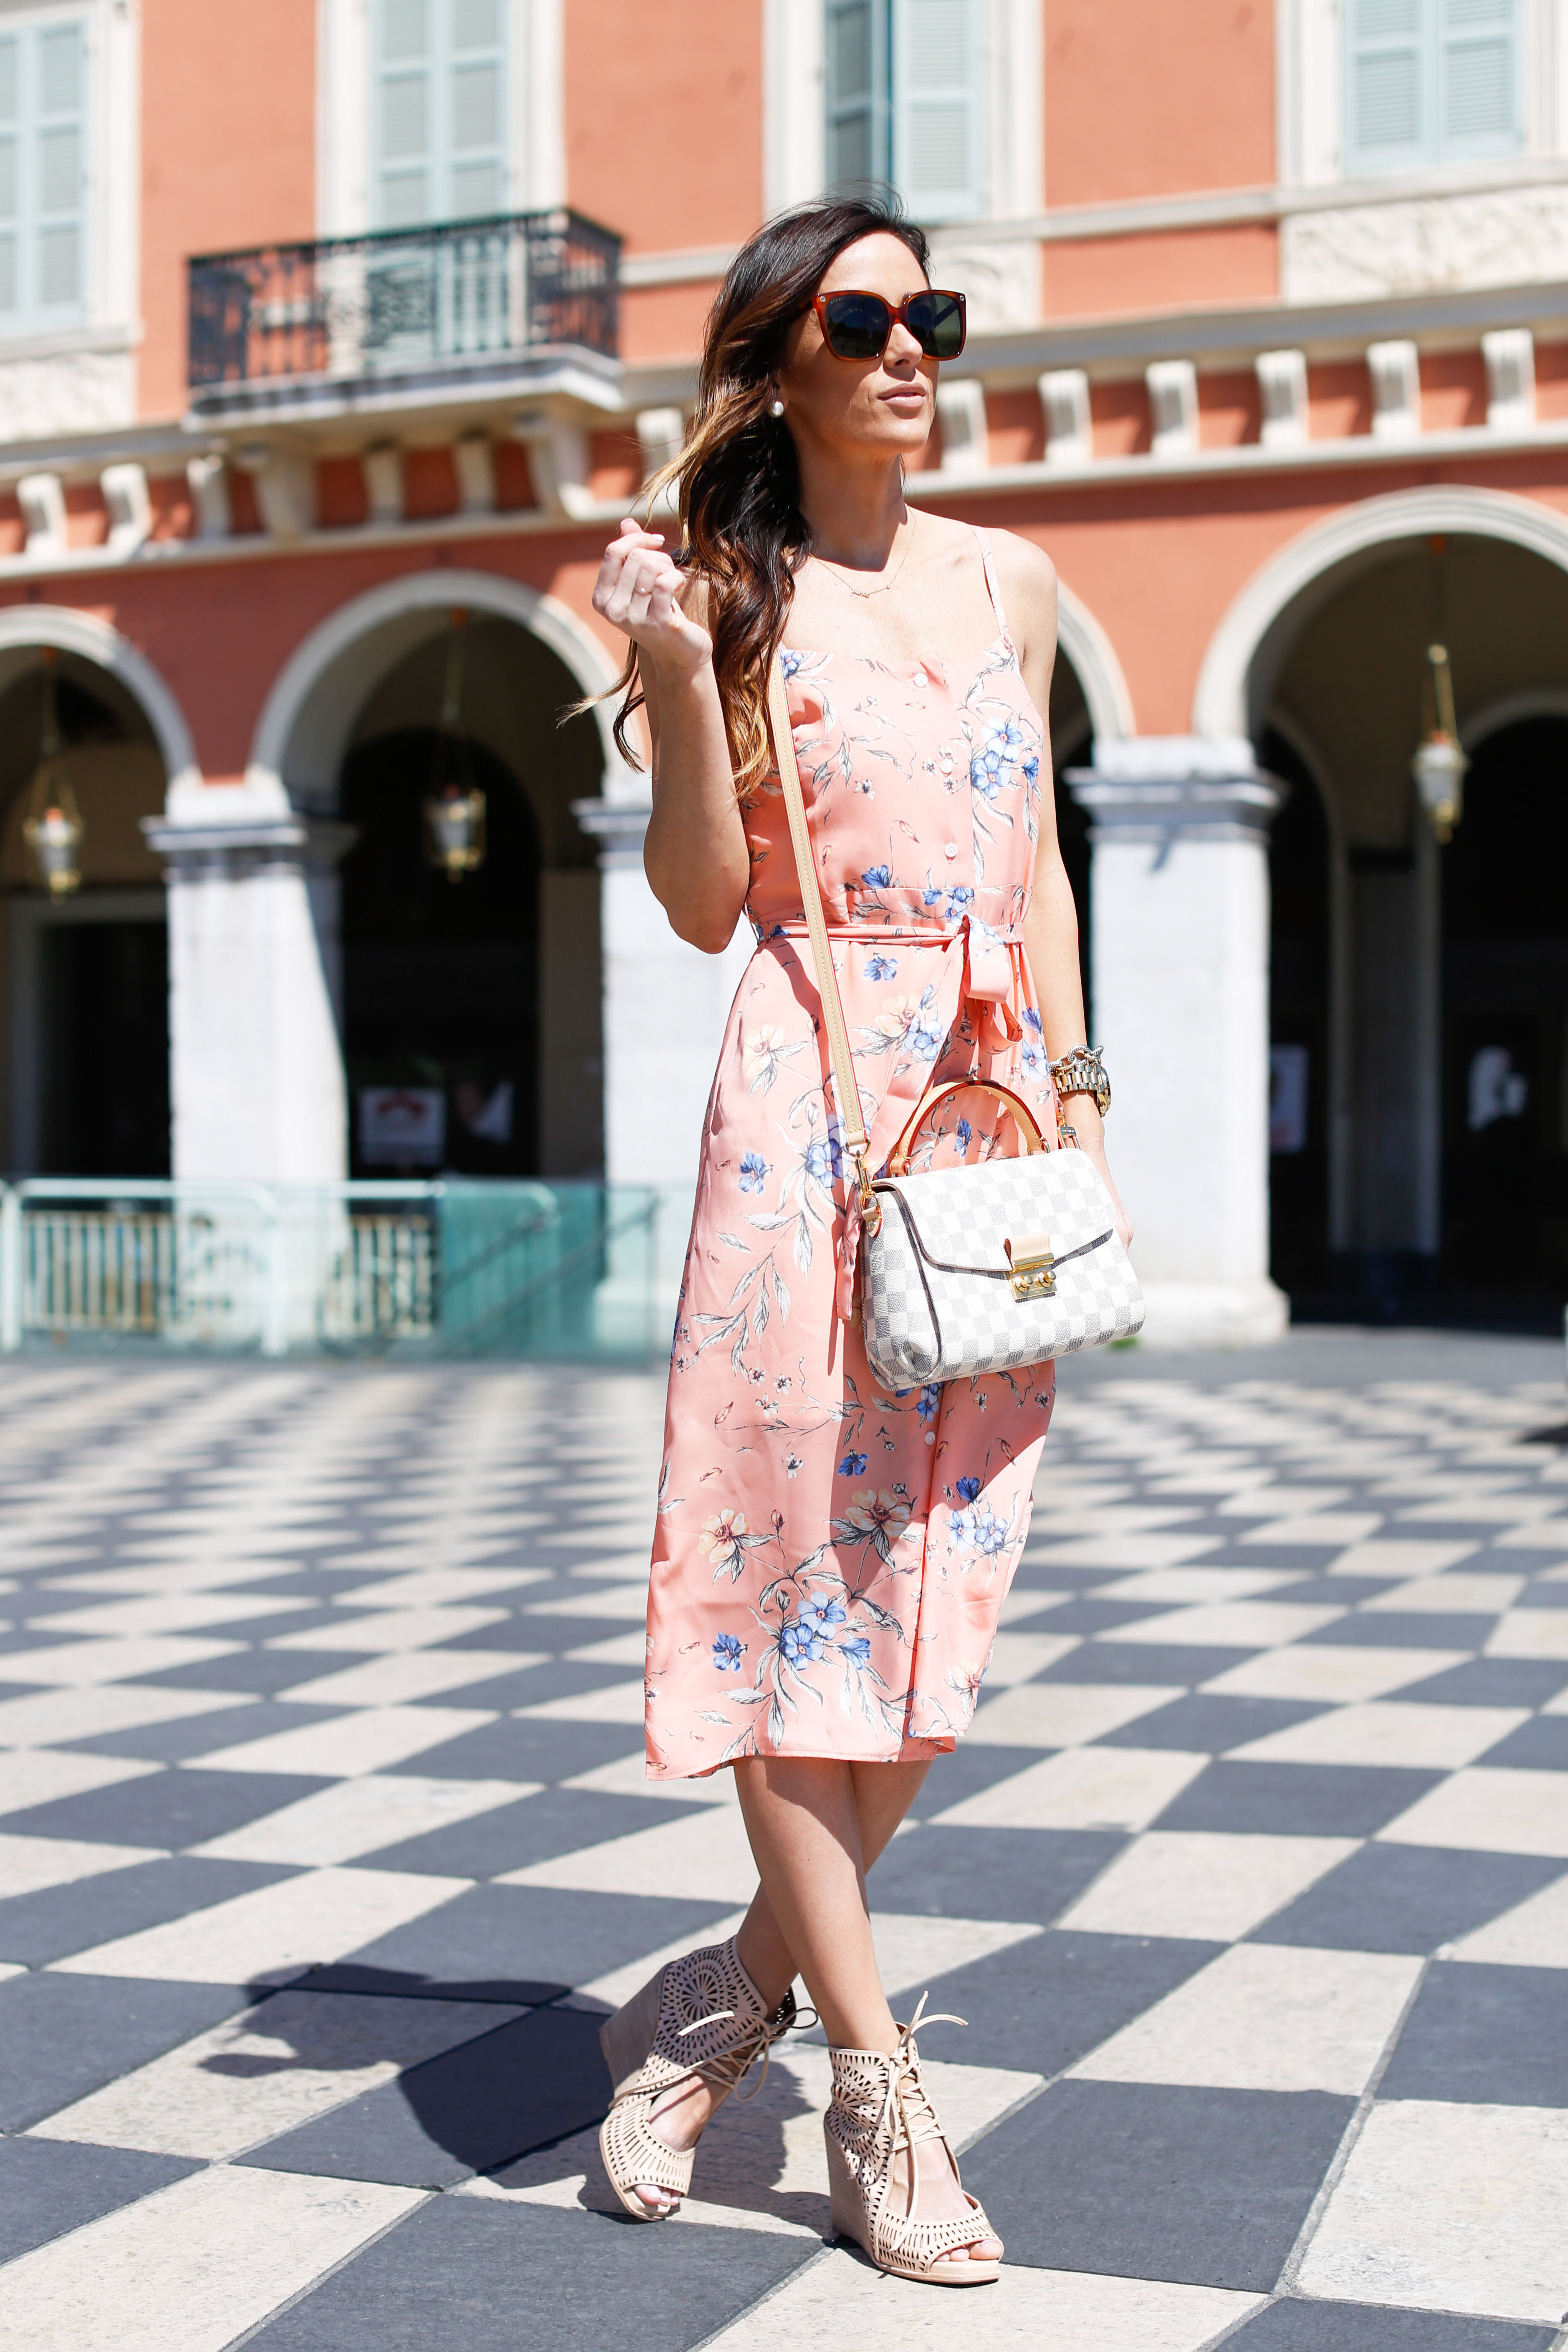 nice, france, international travel, summer outfit, dresses